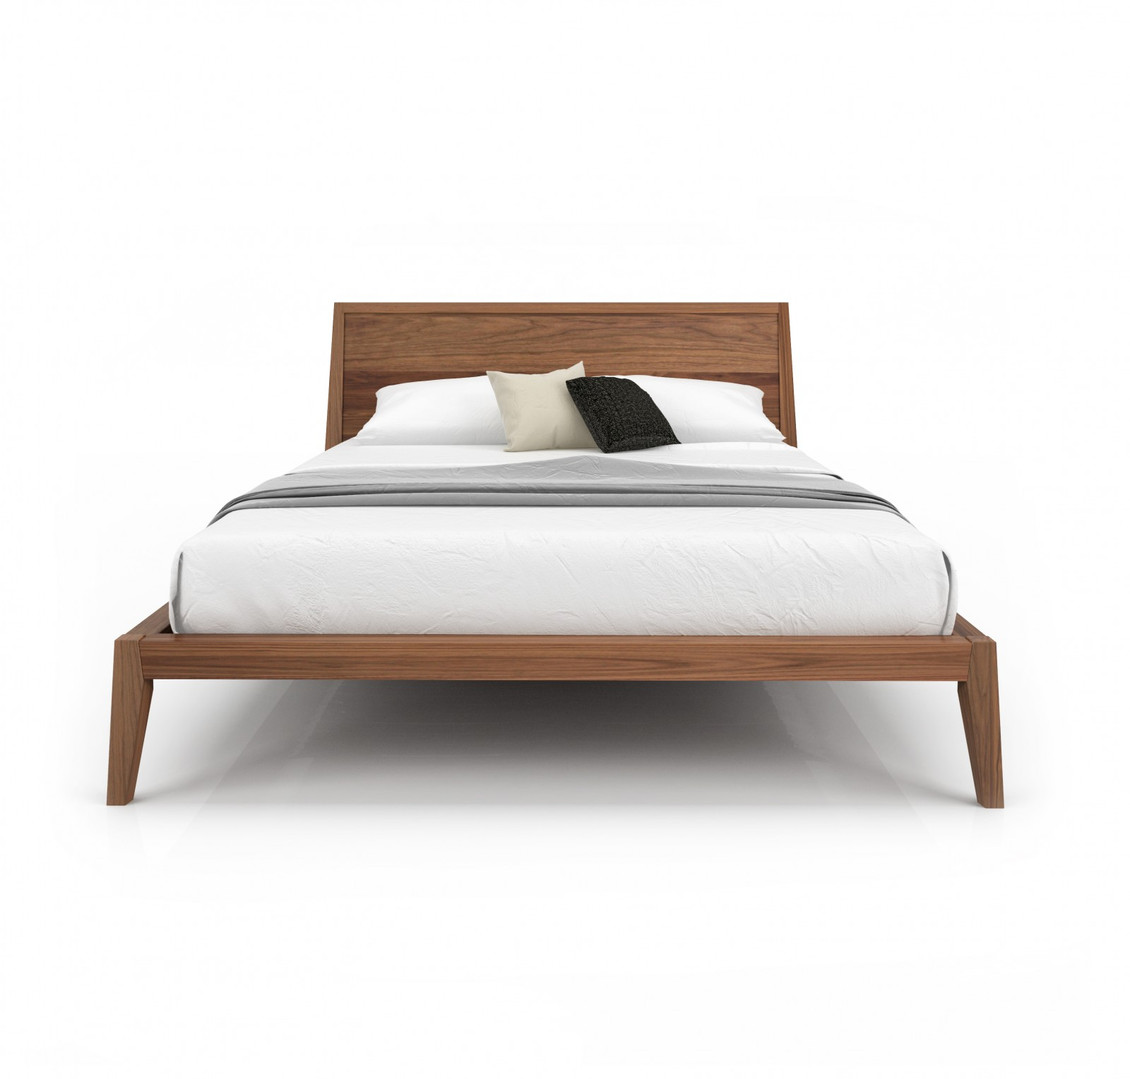 MOMENT BED